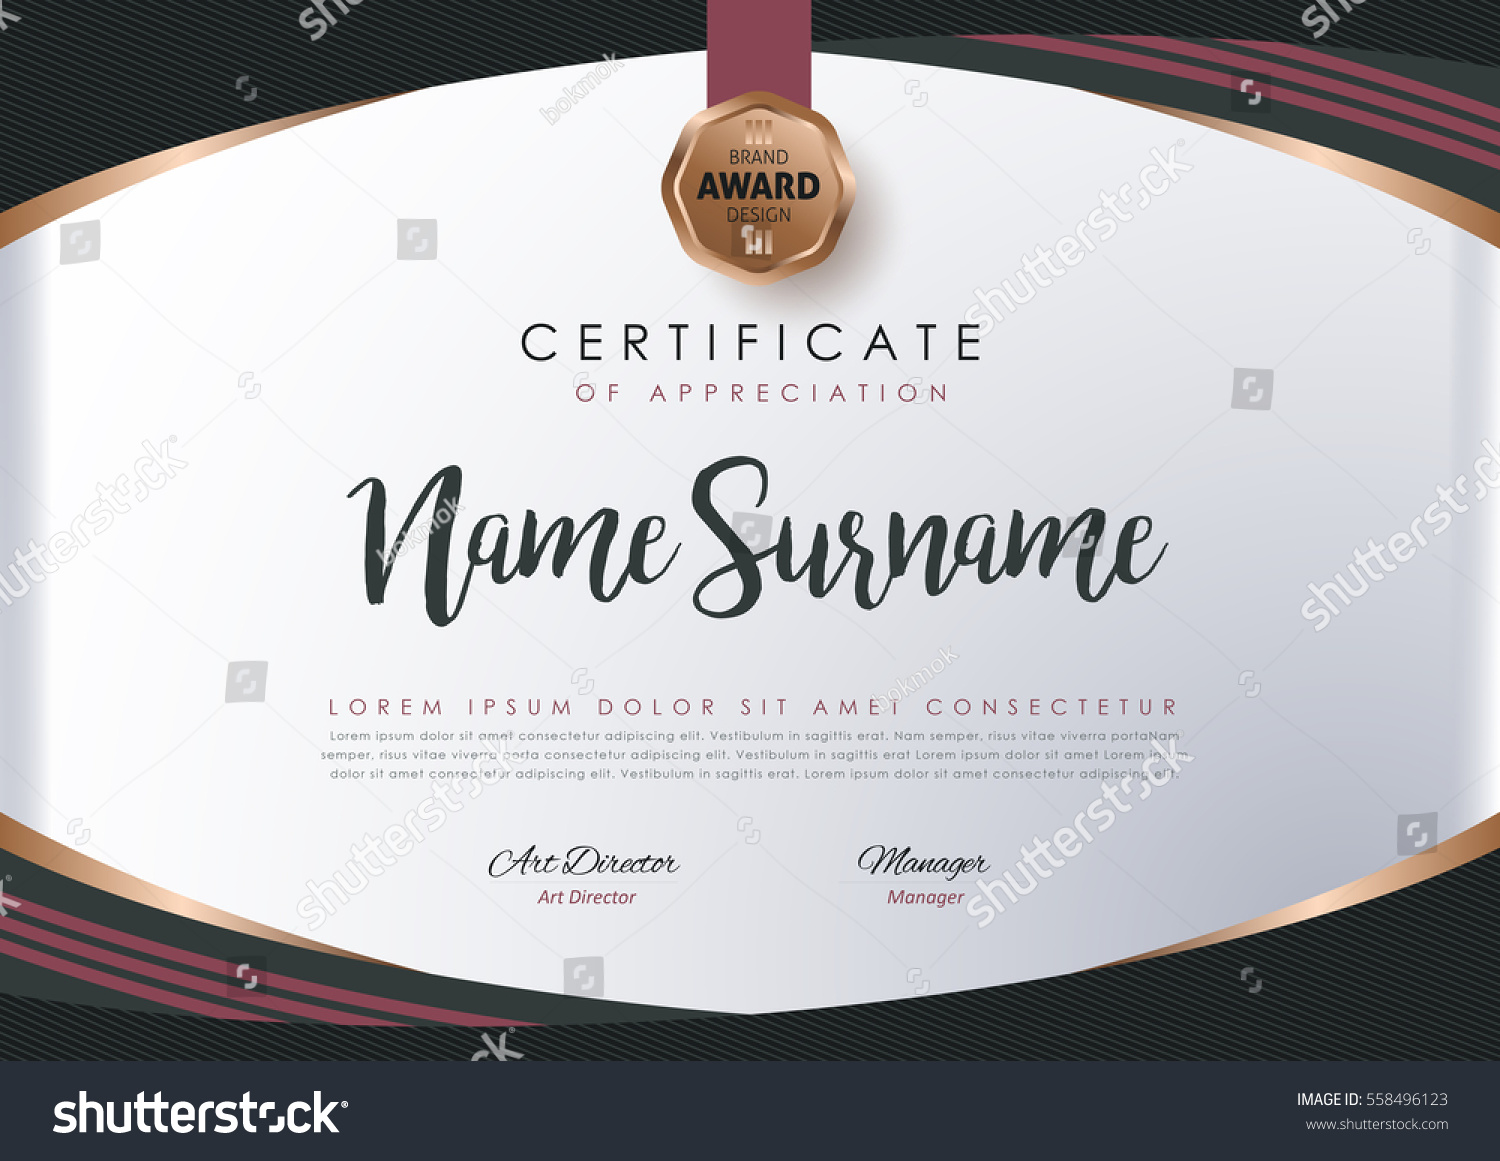 Certificate layout template luxury modern patterndiplomavector certificate layout template with luxury and modern patterndiplomavector illustration yadclub Gallery